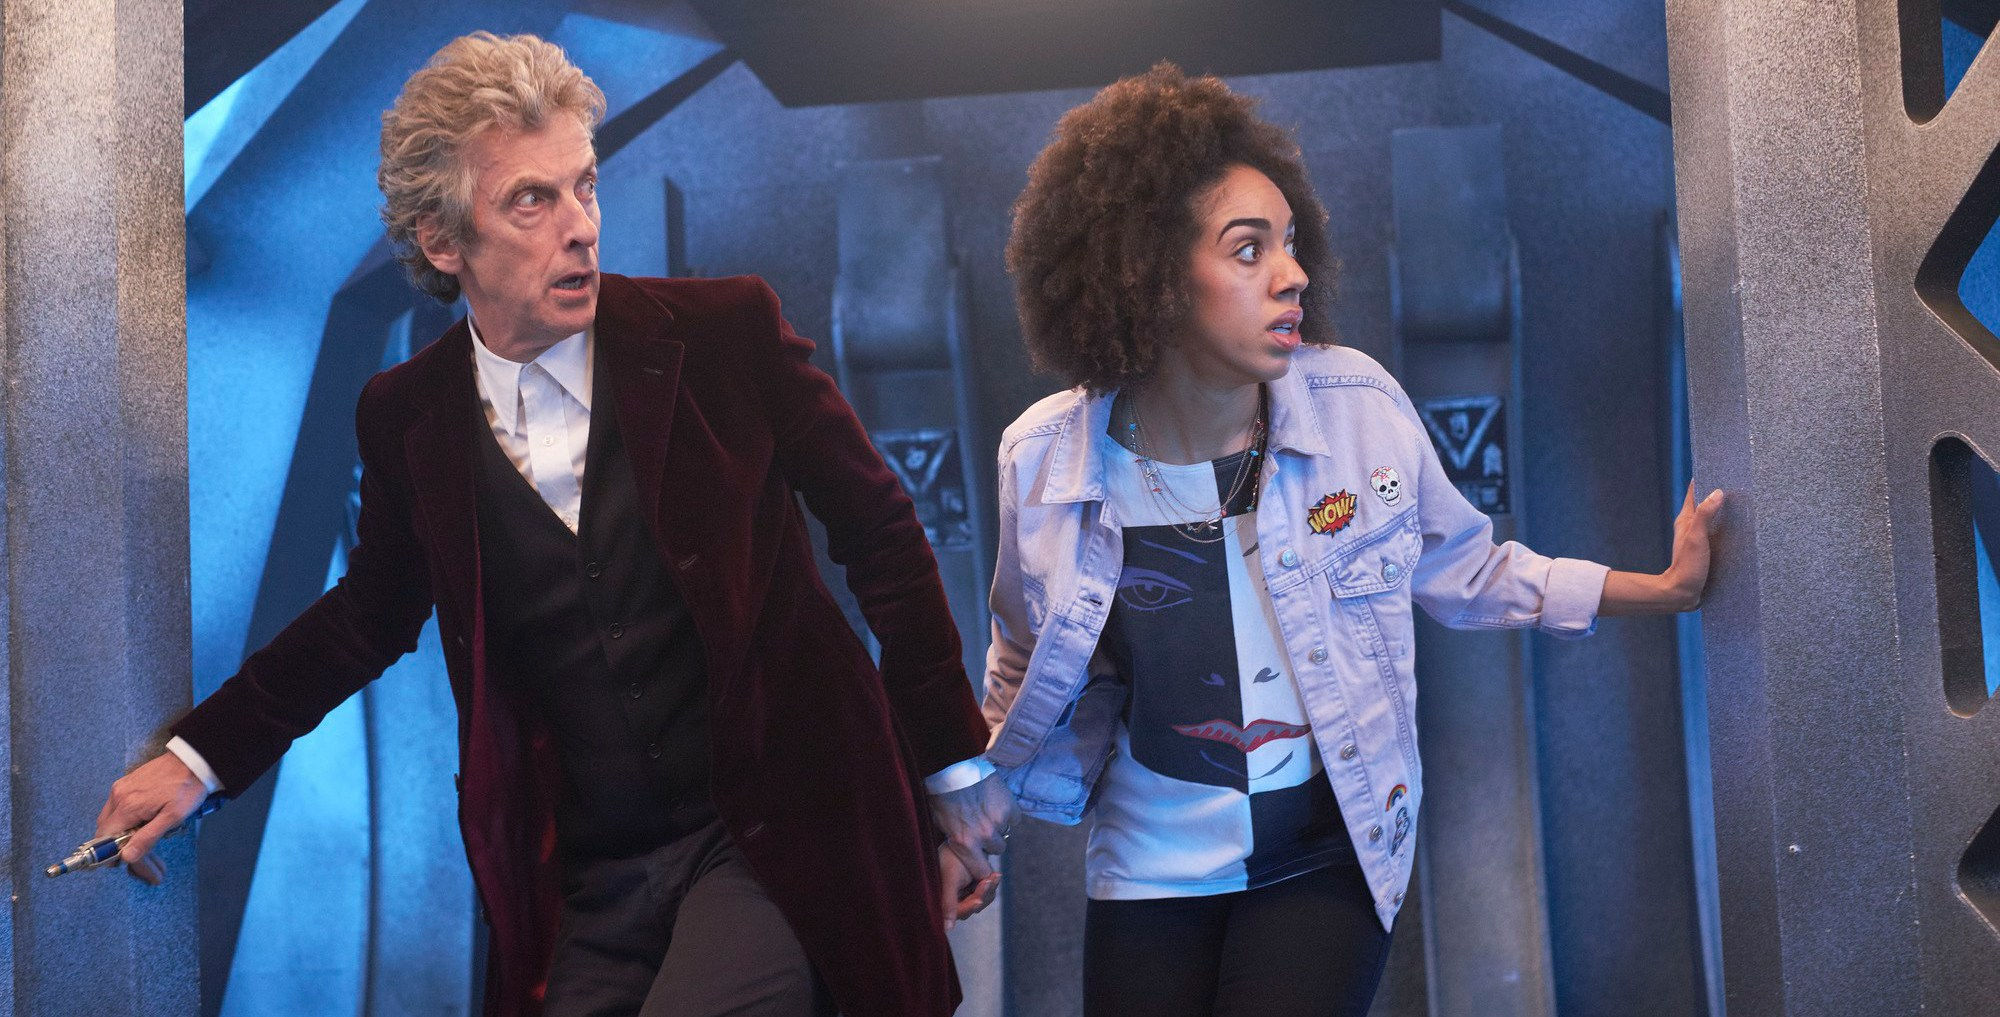 Doctor Who: Il Dottore e la sua nuova companion in una scena dell'episodio The Pilot